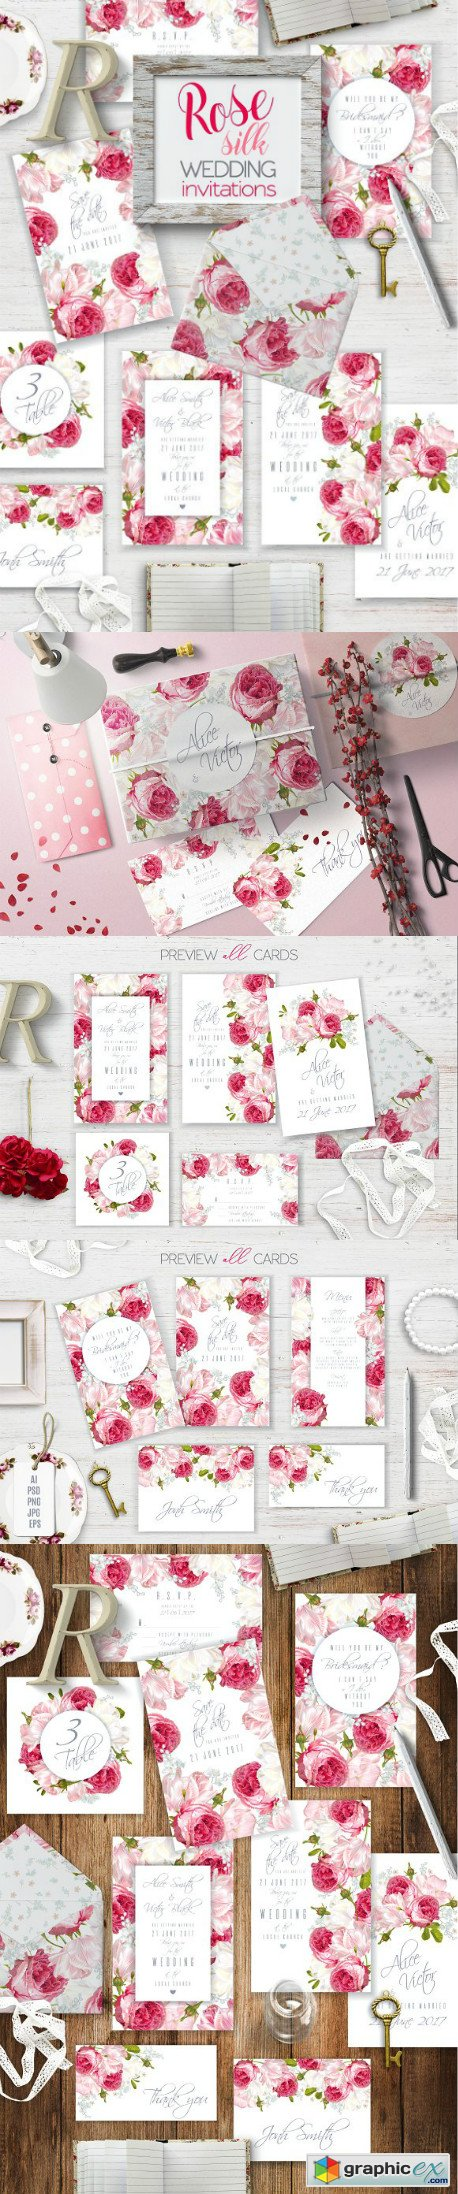 Rose Silk Wedding invitations